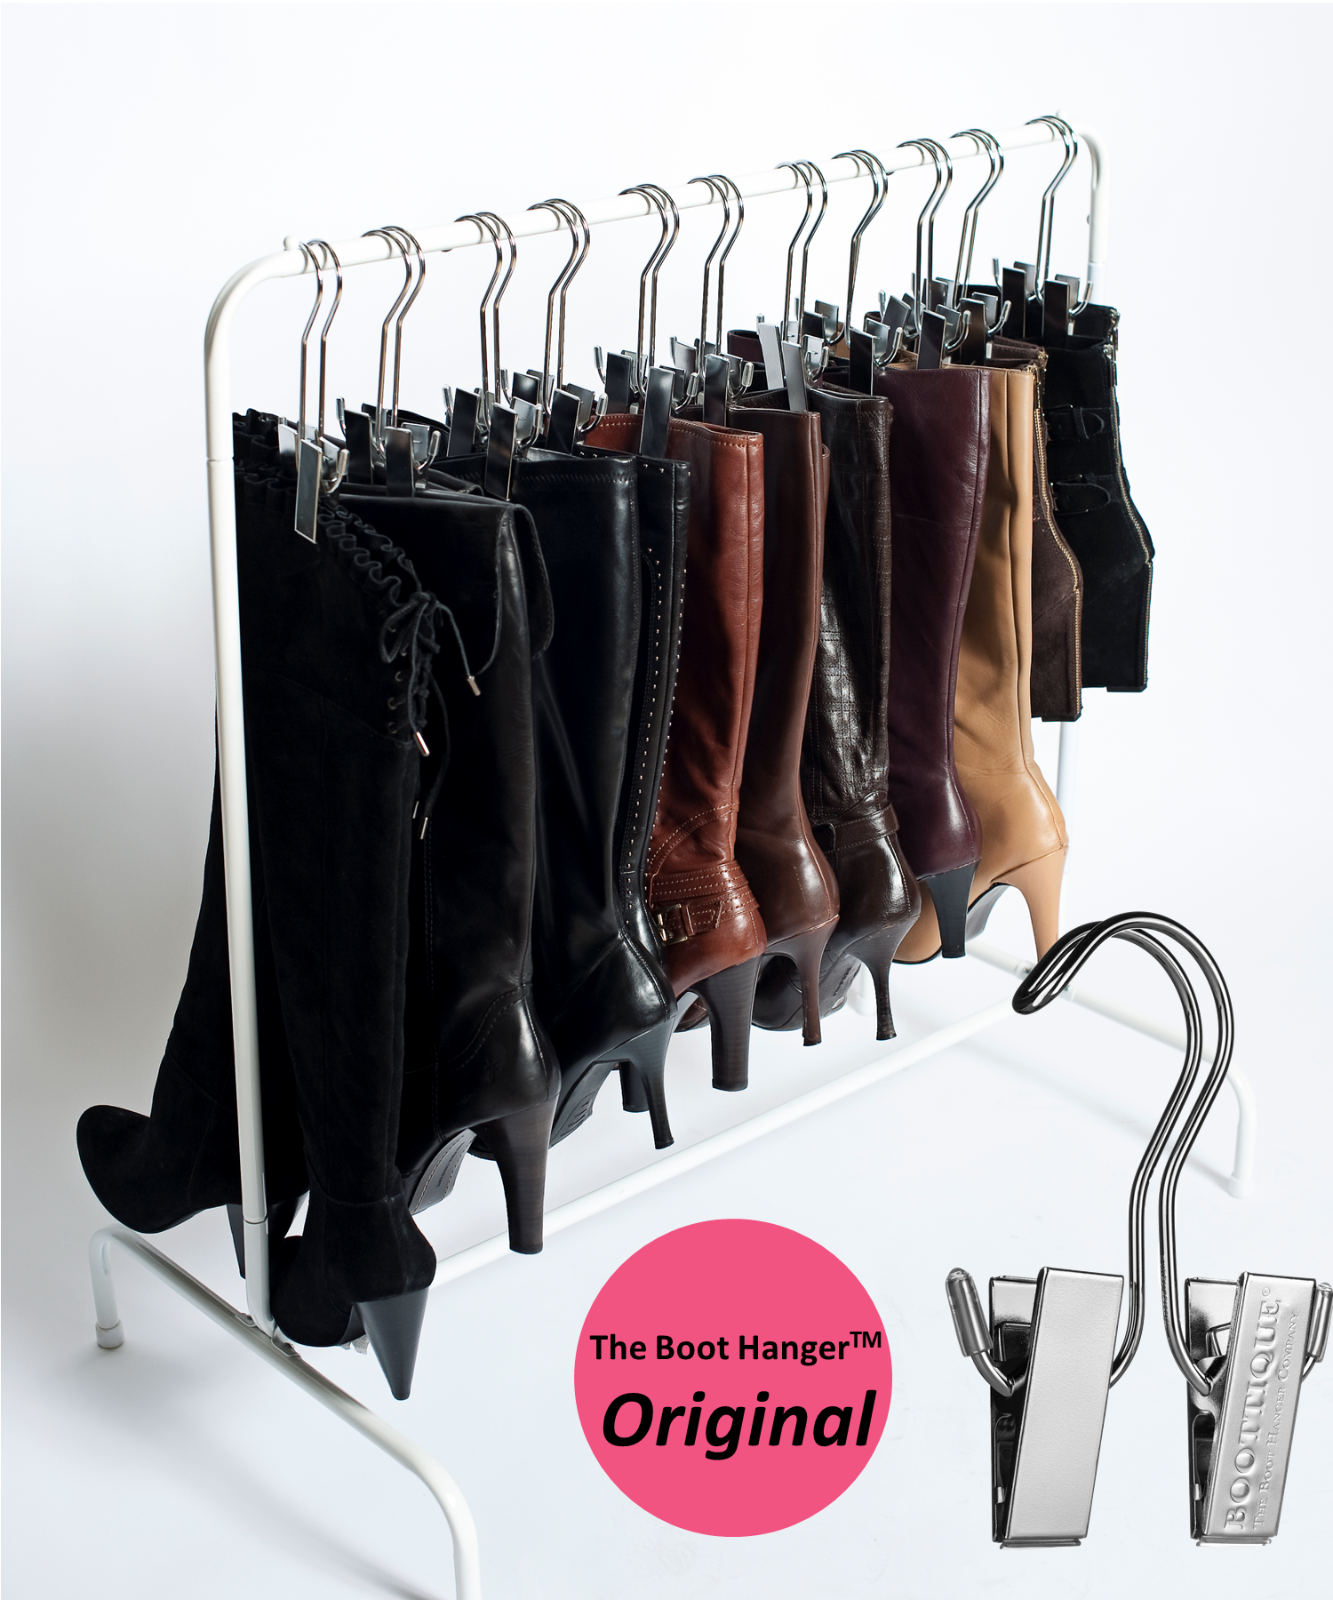 The Boot Rack- Boot Storage System including Boot Hangers by Boottique - $47.95 - $59.95